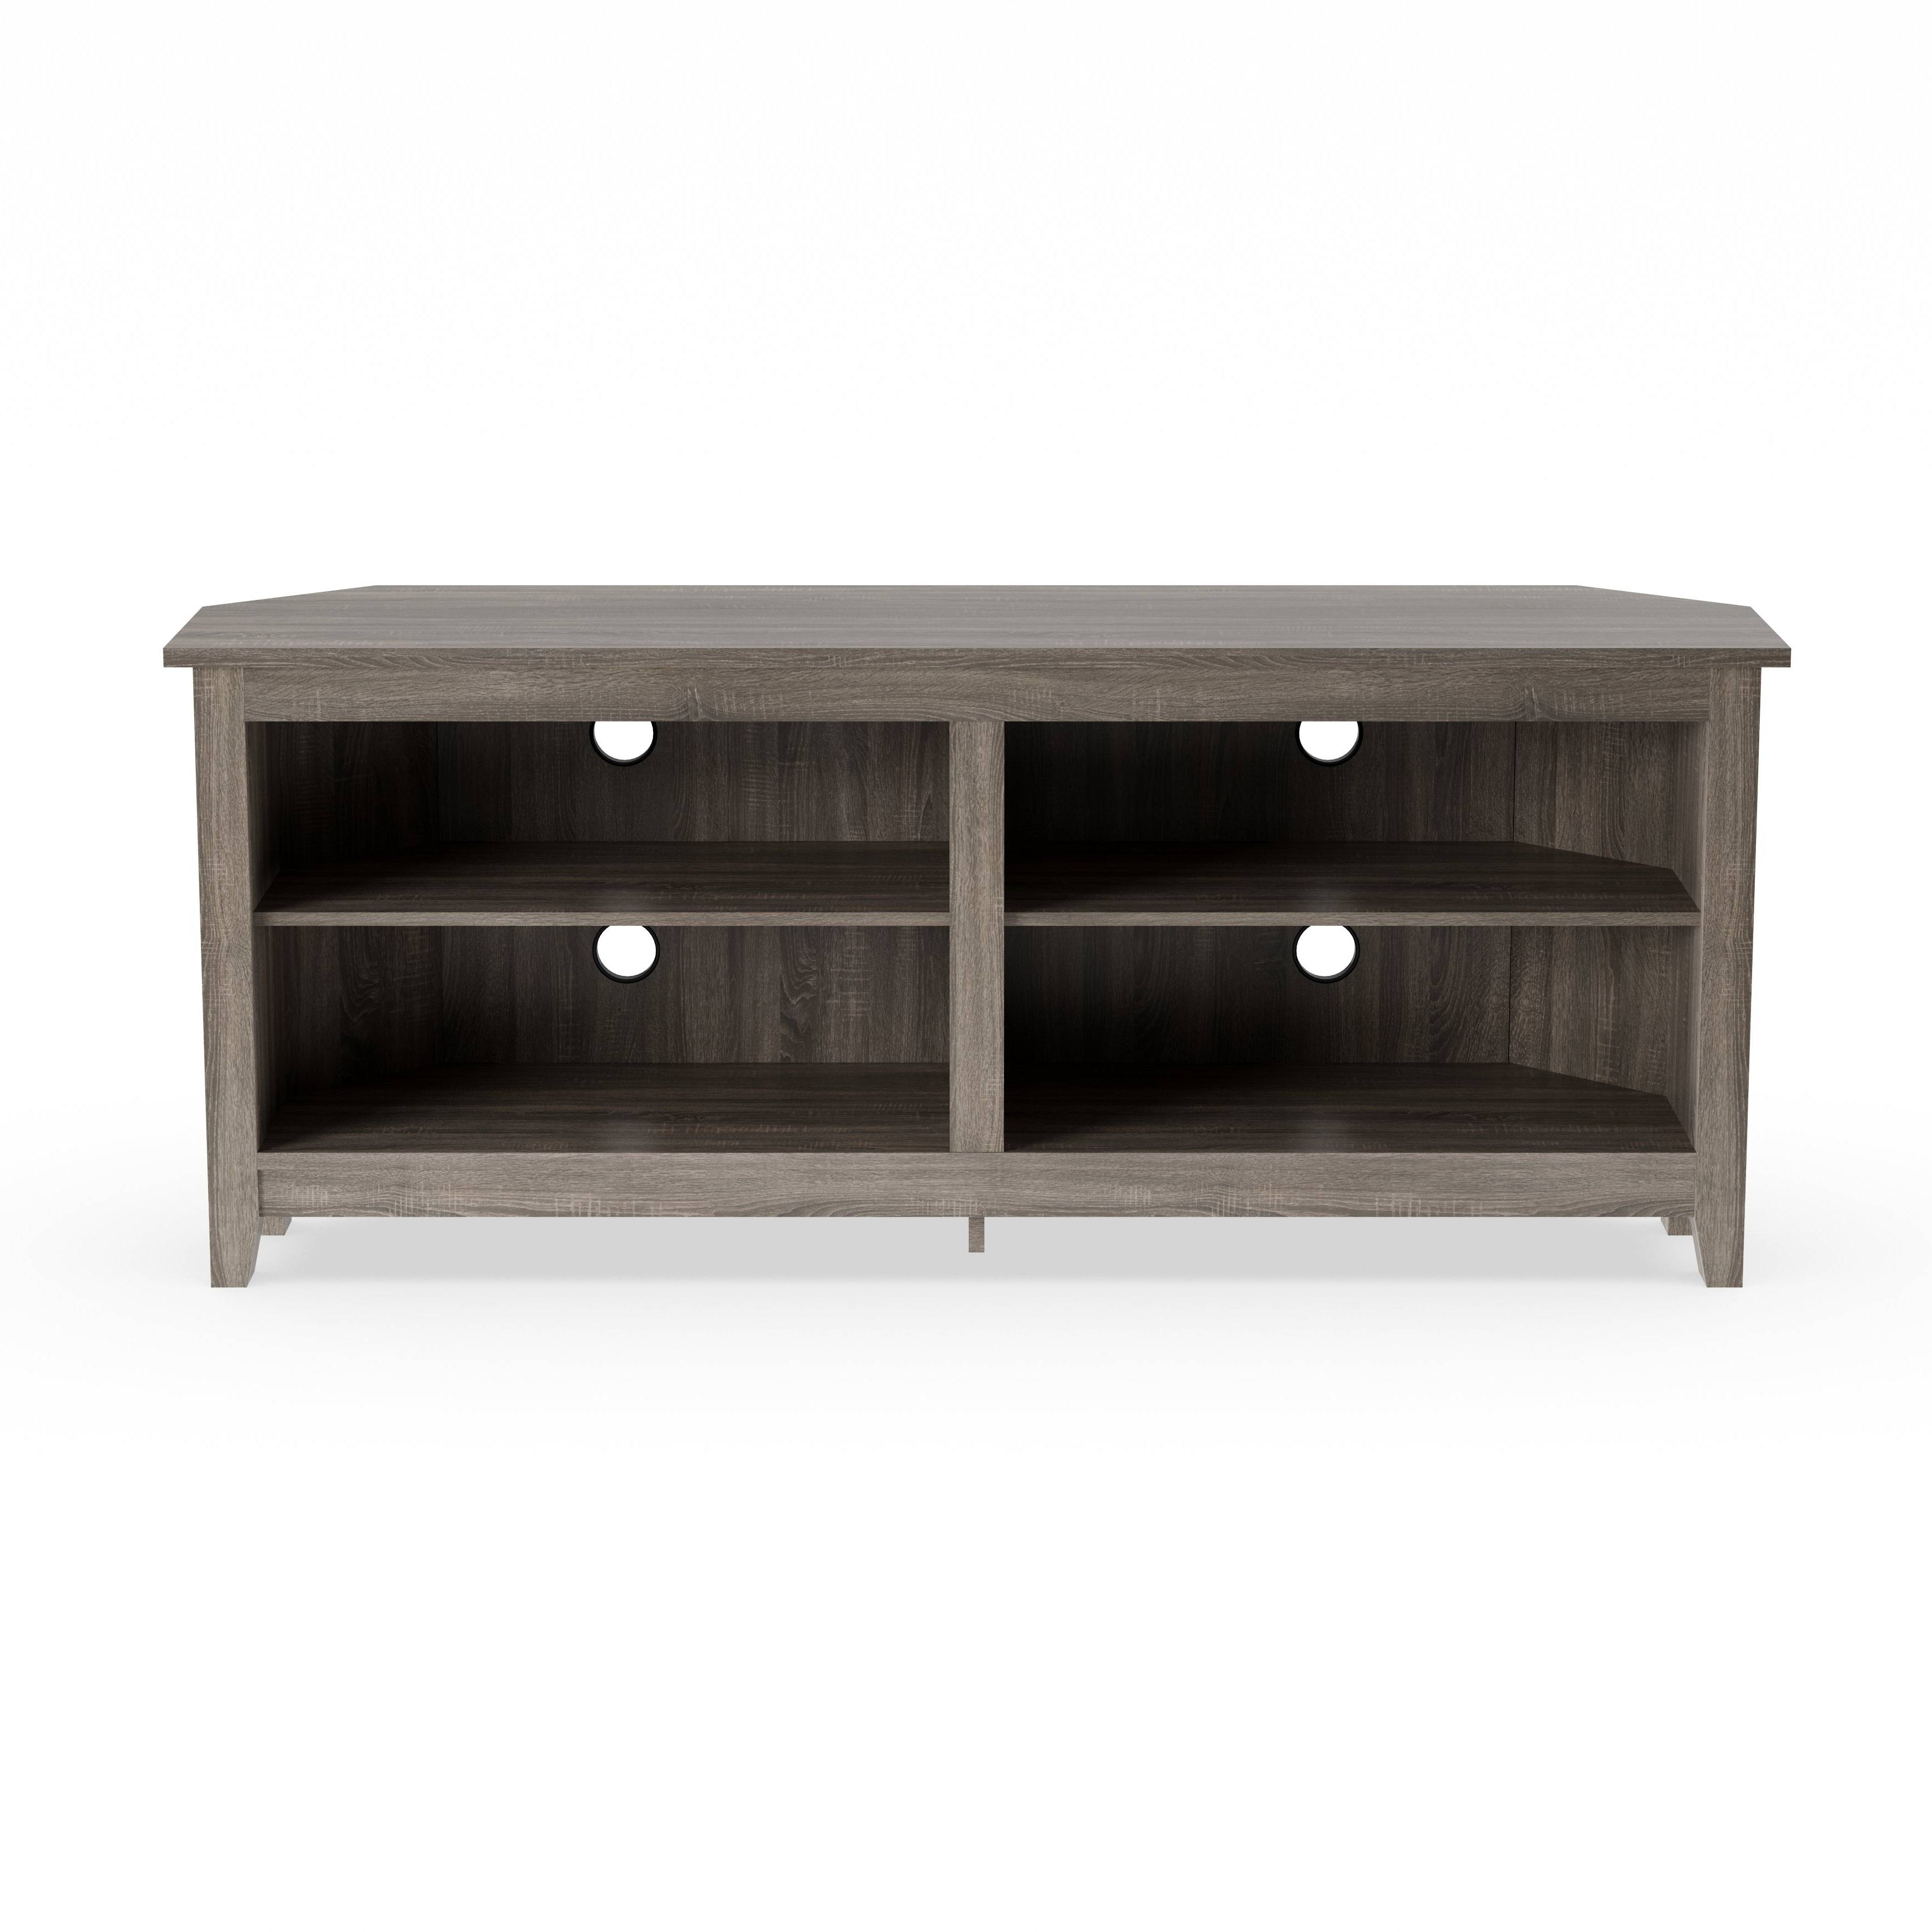 Shop Porch & Den Dexter 58 Inch Driftwood Corner Tv Stand – On Sale With Regard To Century Sky 60 Inch Tv Stands (Gallery 19 of 20)